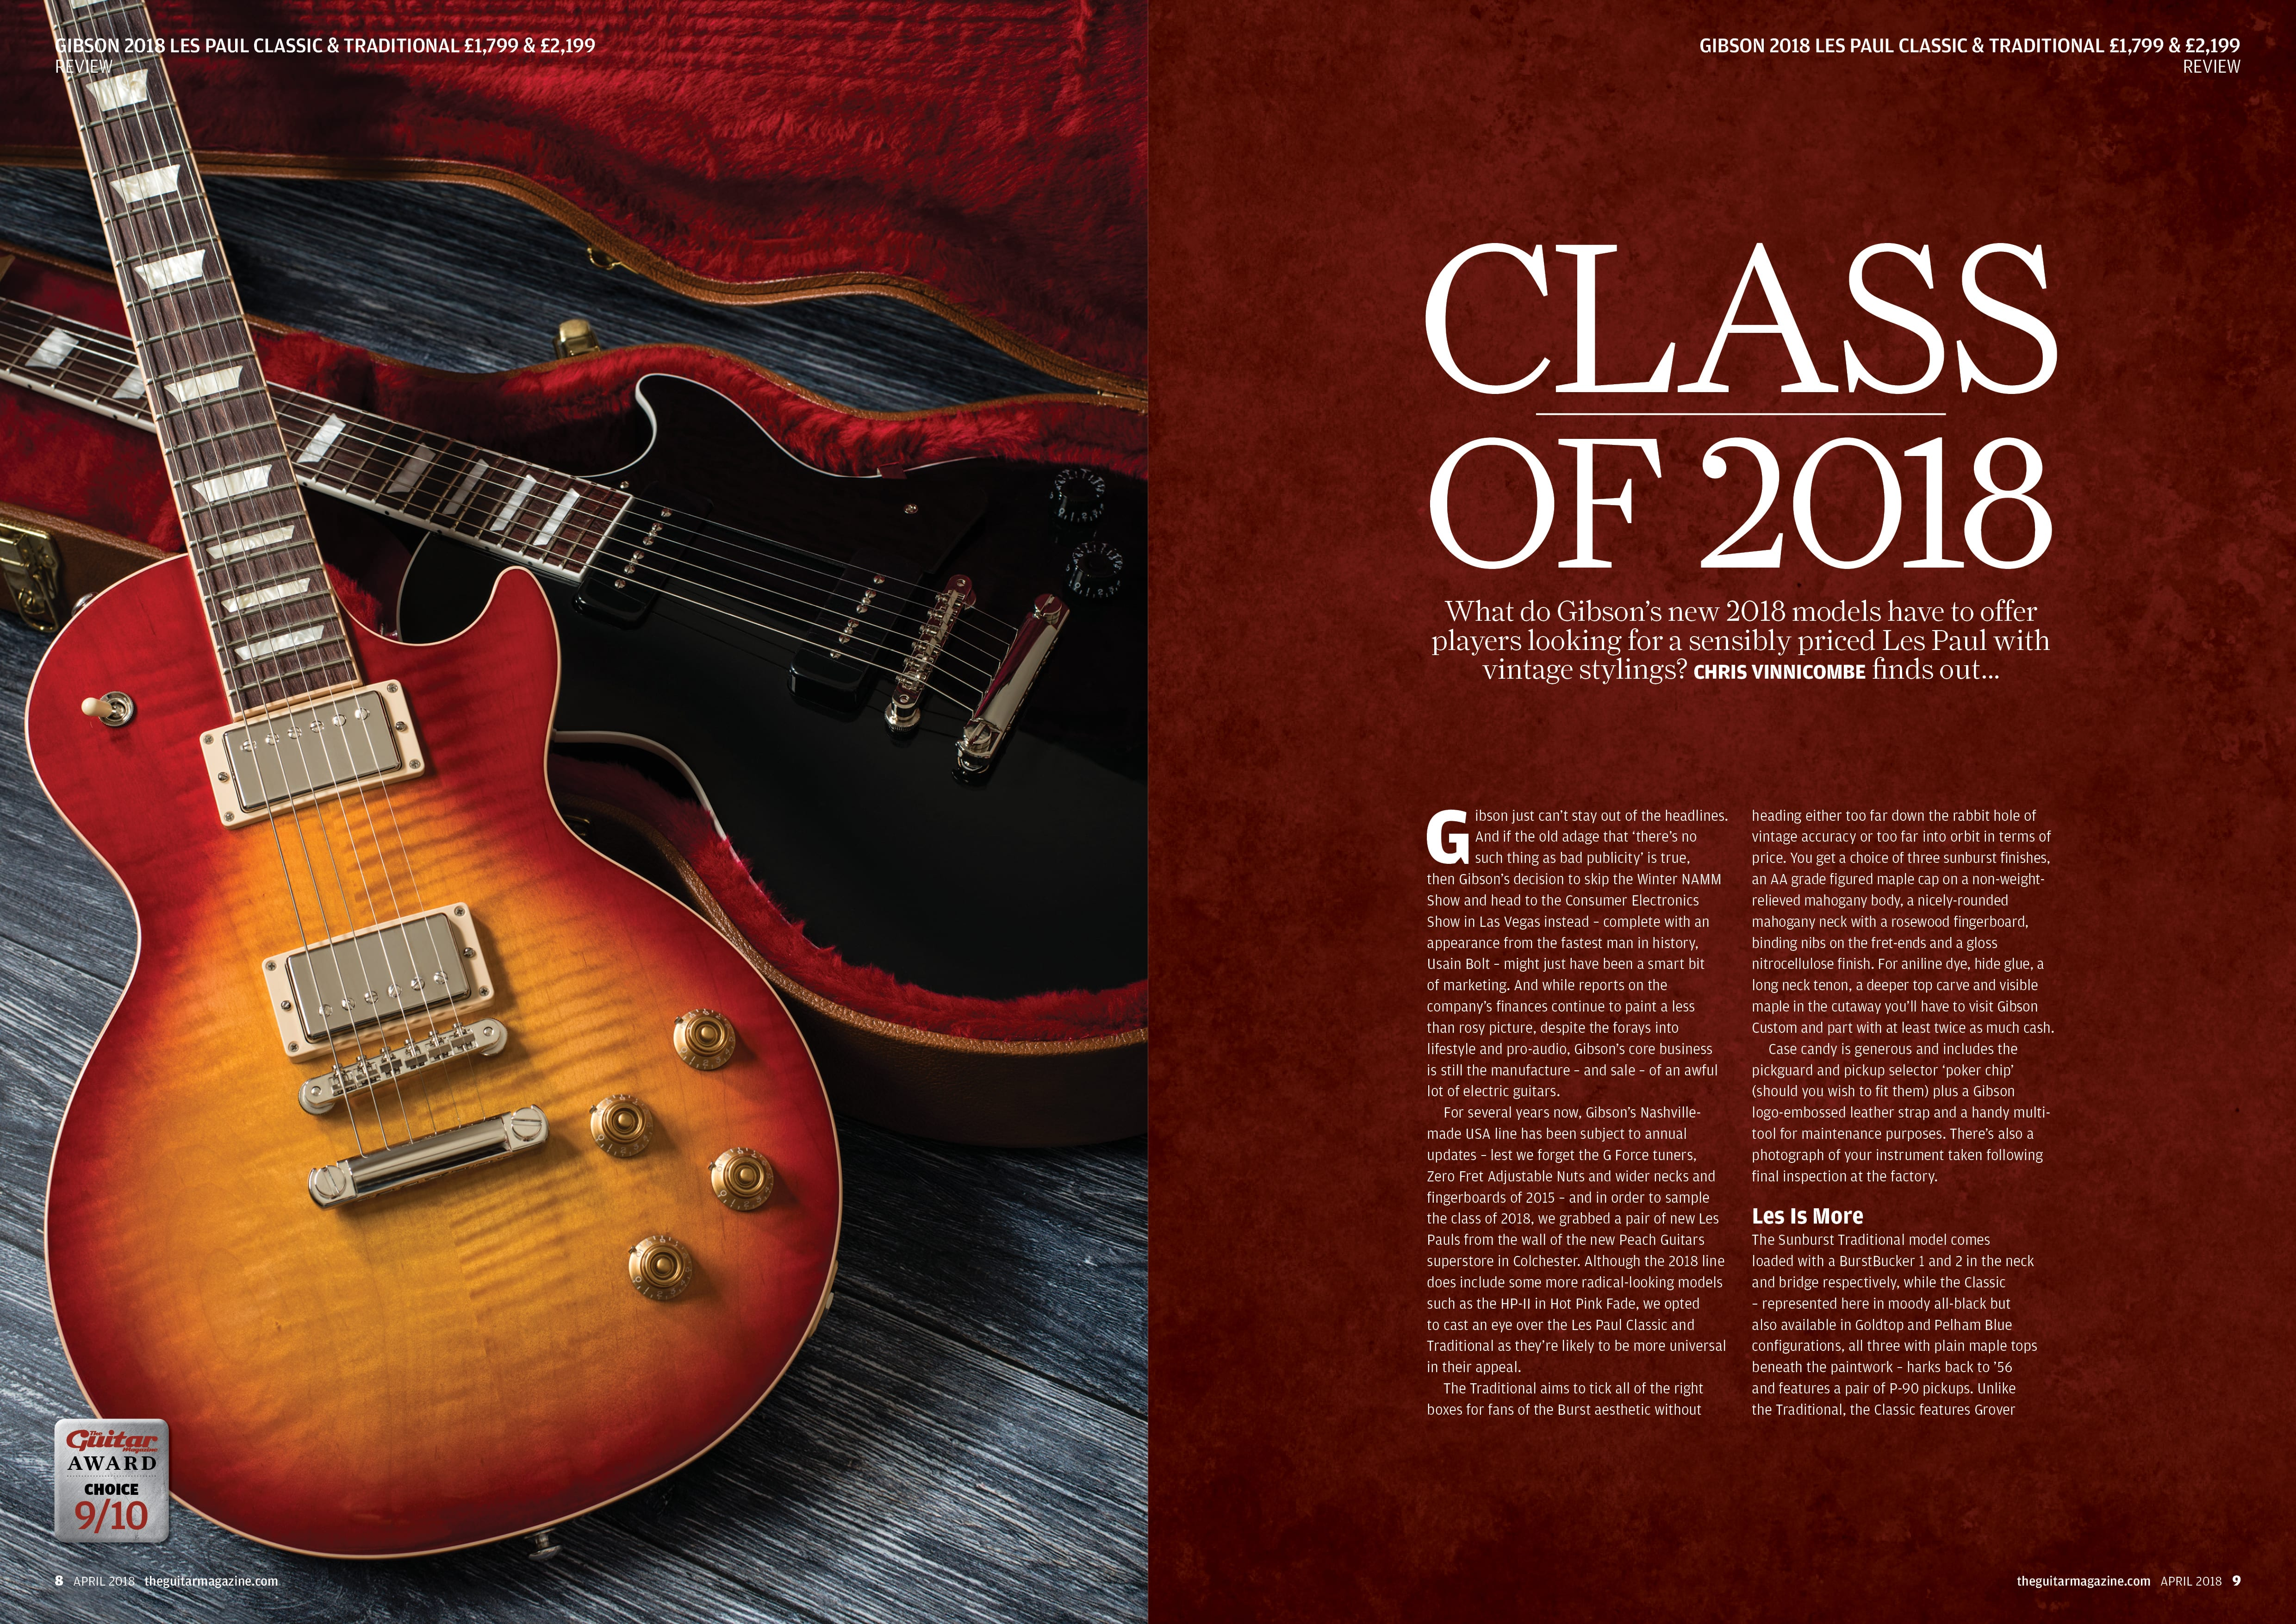 The April issue of The Guitar Magazine is on sale now